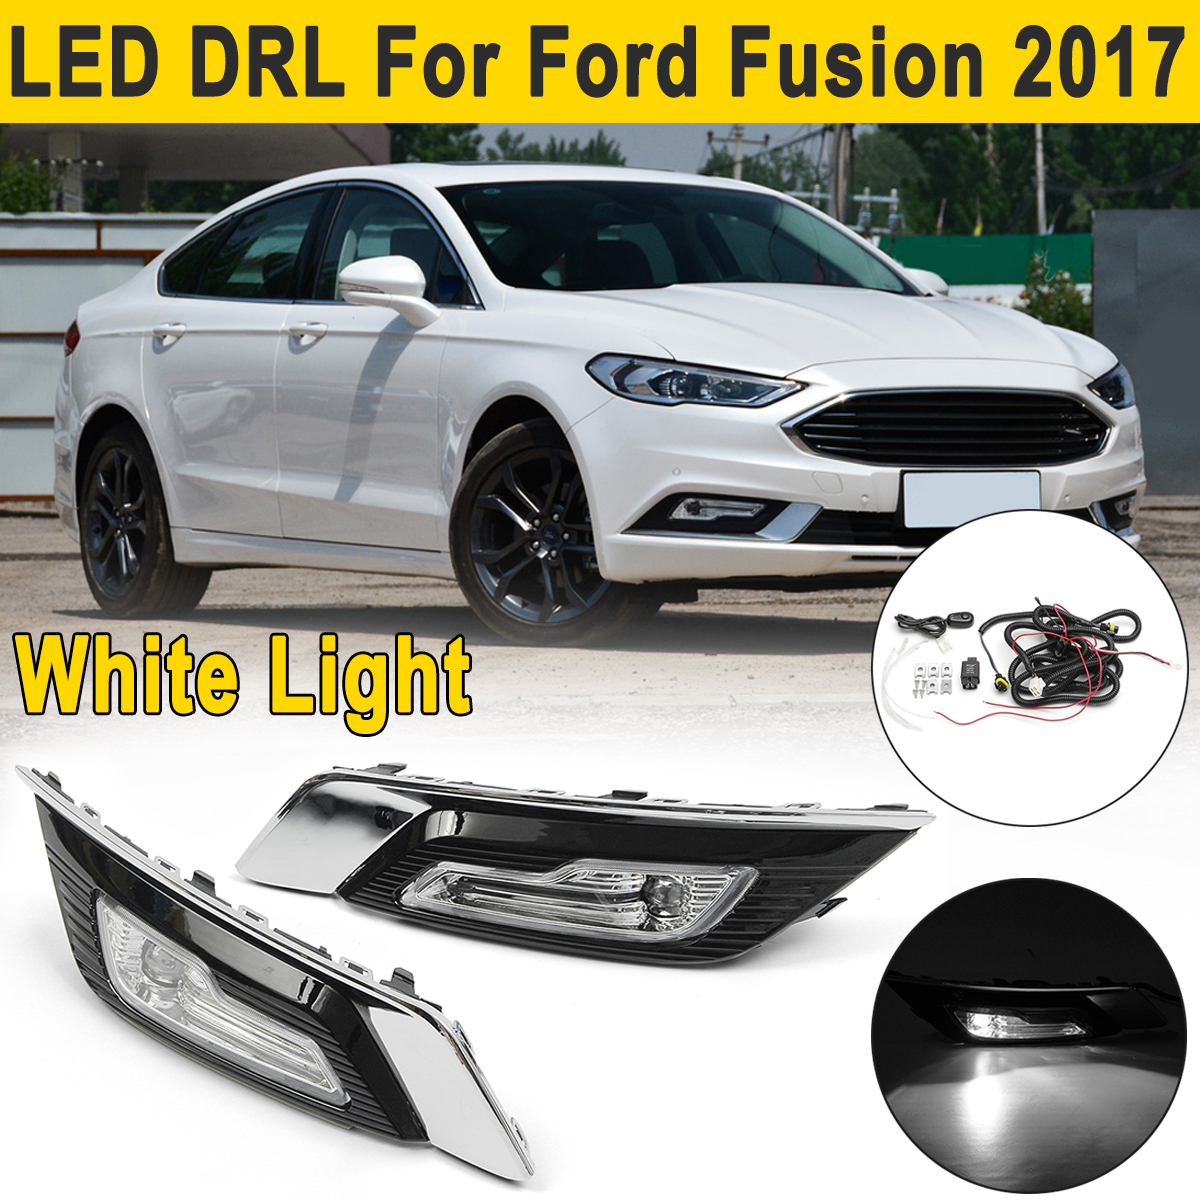 2Pcs LED DRL Daytime Running Lights Lamps Turn Signal Fog Lights Wire for Ford for Fusion for Mondeo 2017 2018 Driving Light eosuns led drl daylights daytime running light with yellow turn signal fog lamp for ford mondeo 2010 12 wire module controller